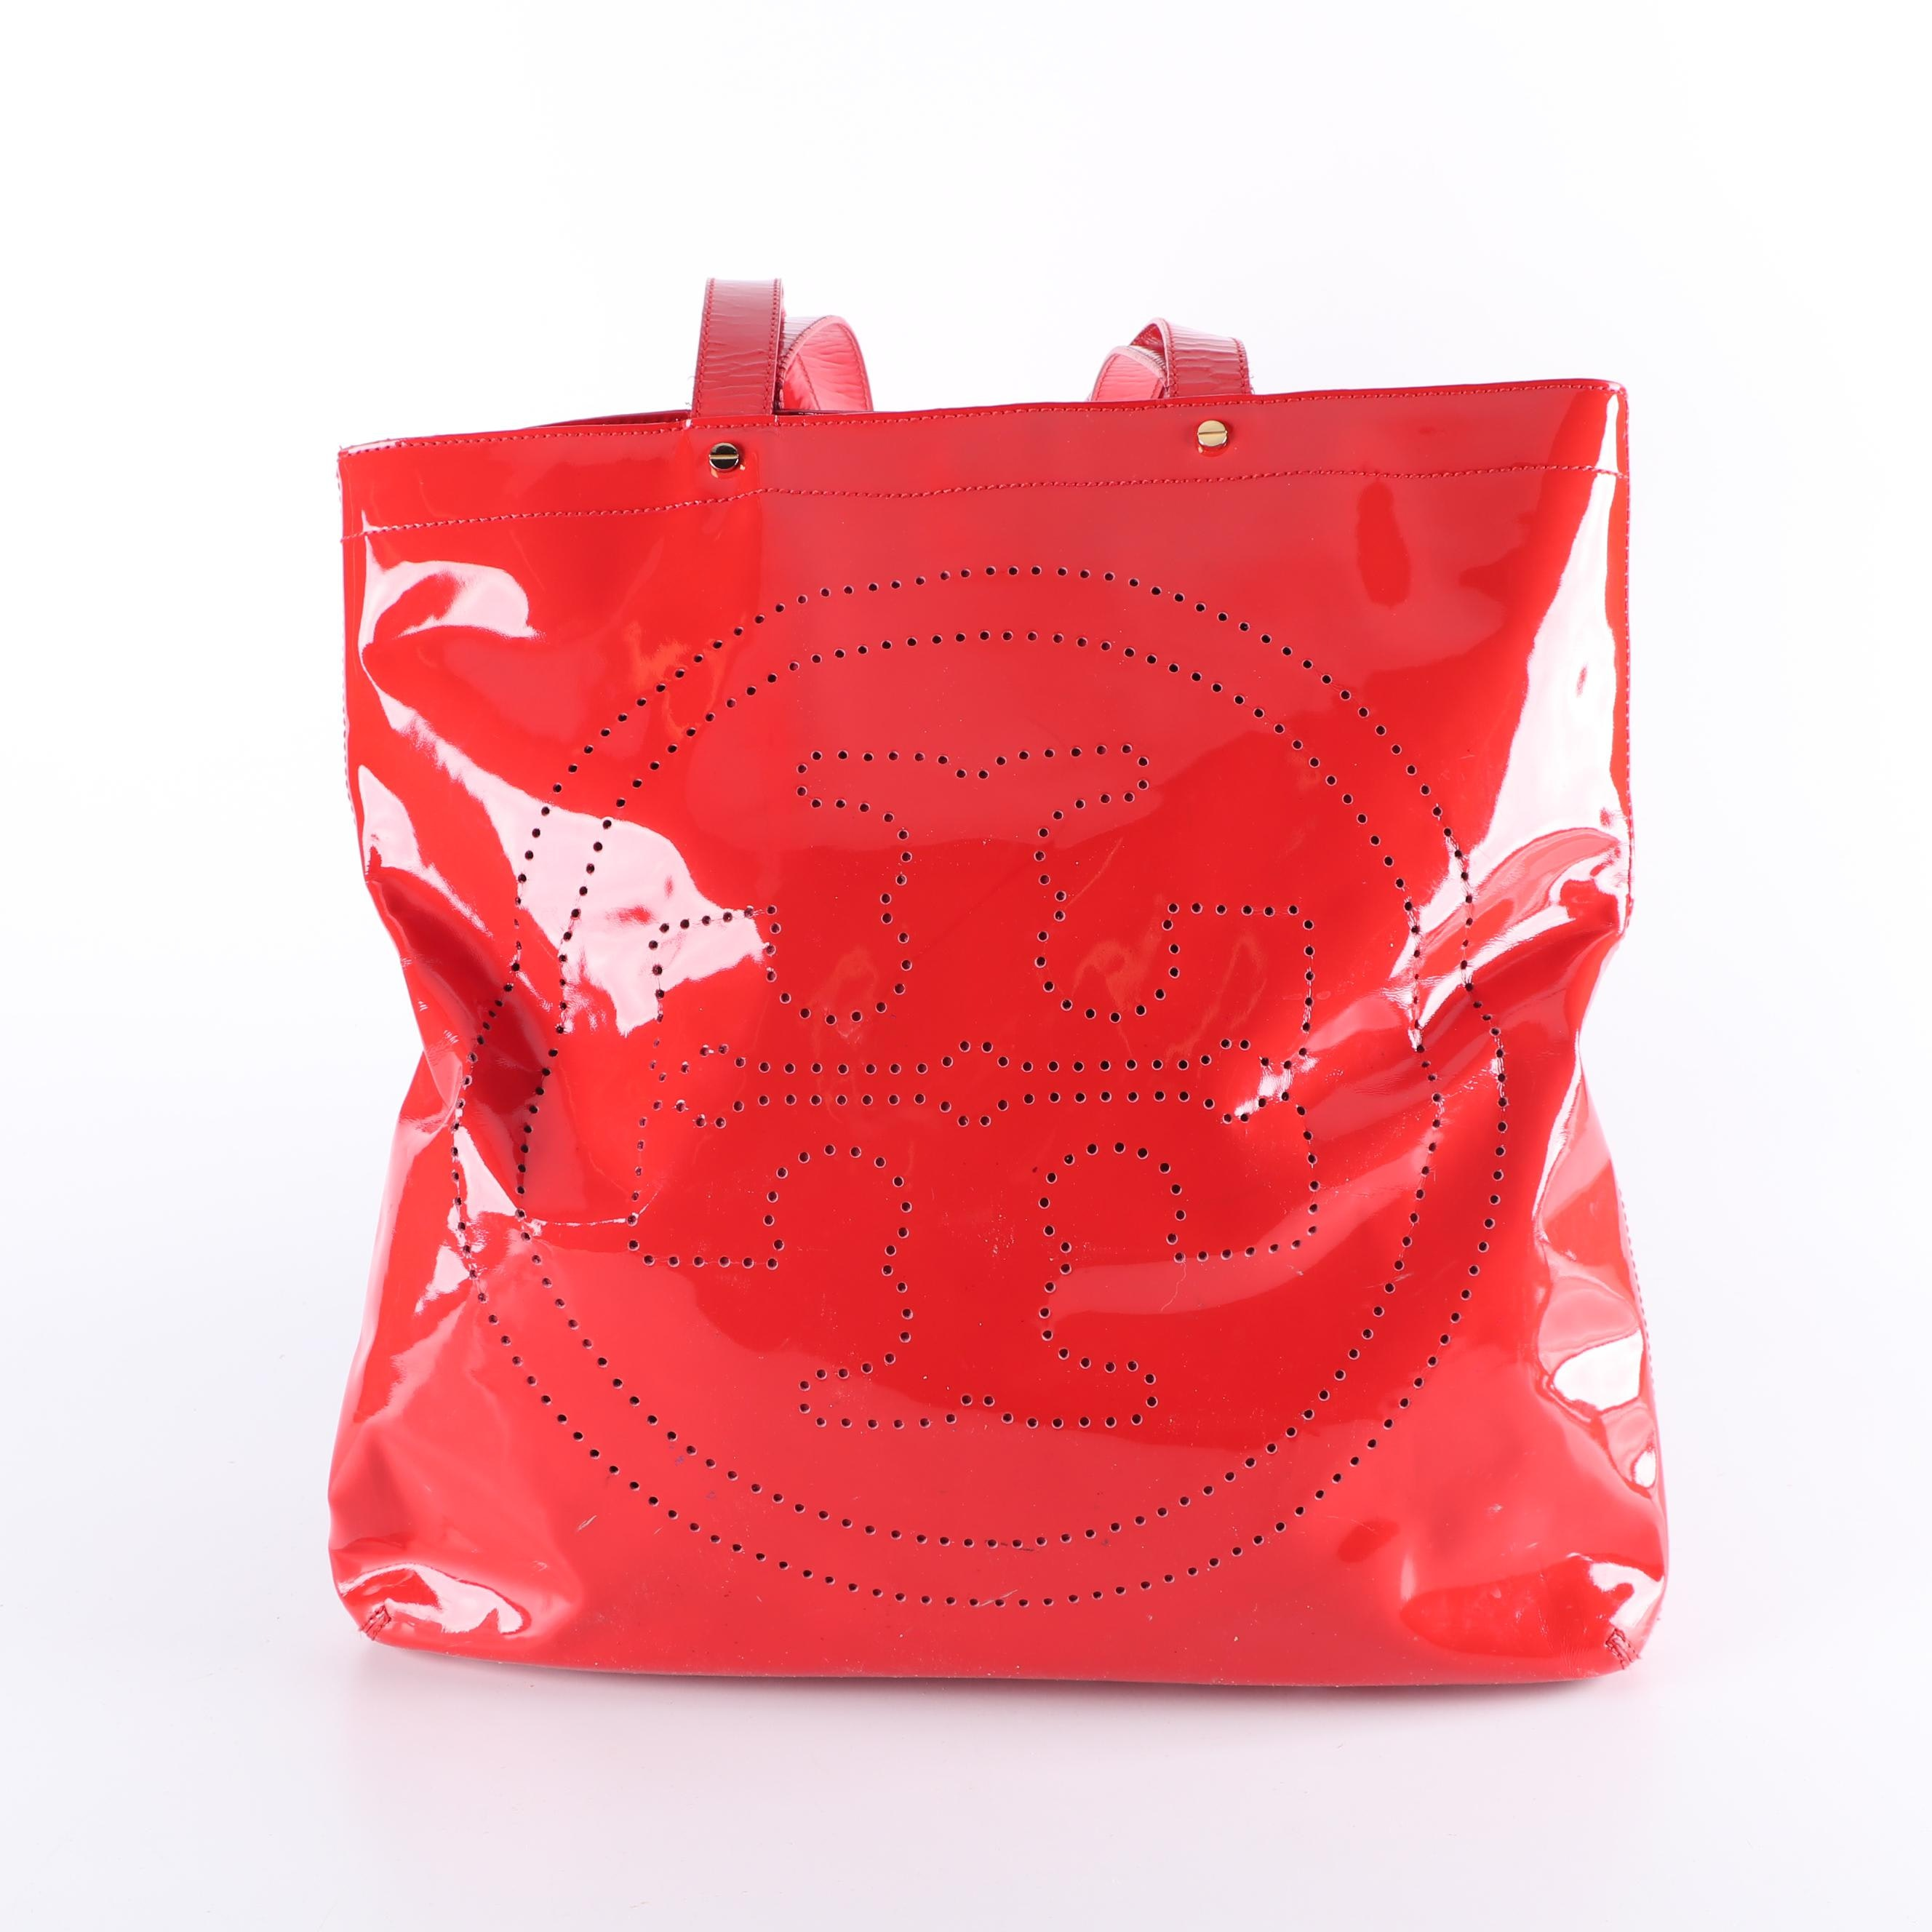 Tory Burch Red Perforated Patent Leather Logo Tote Bag